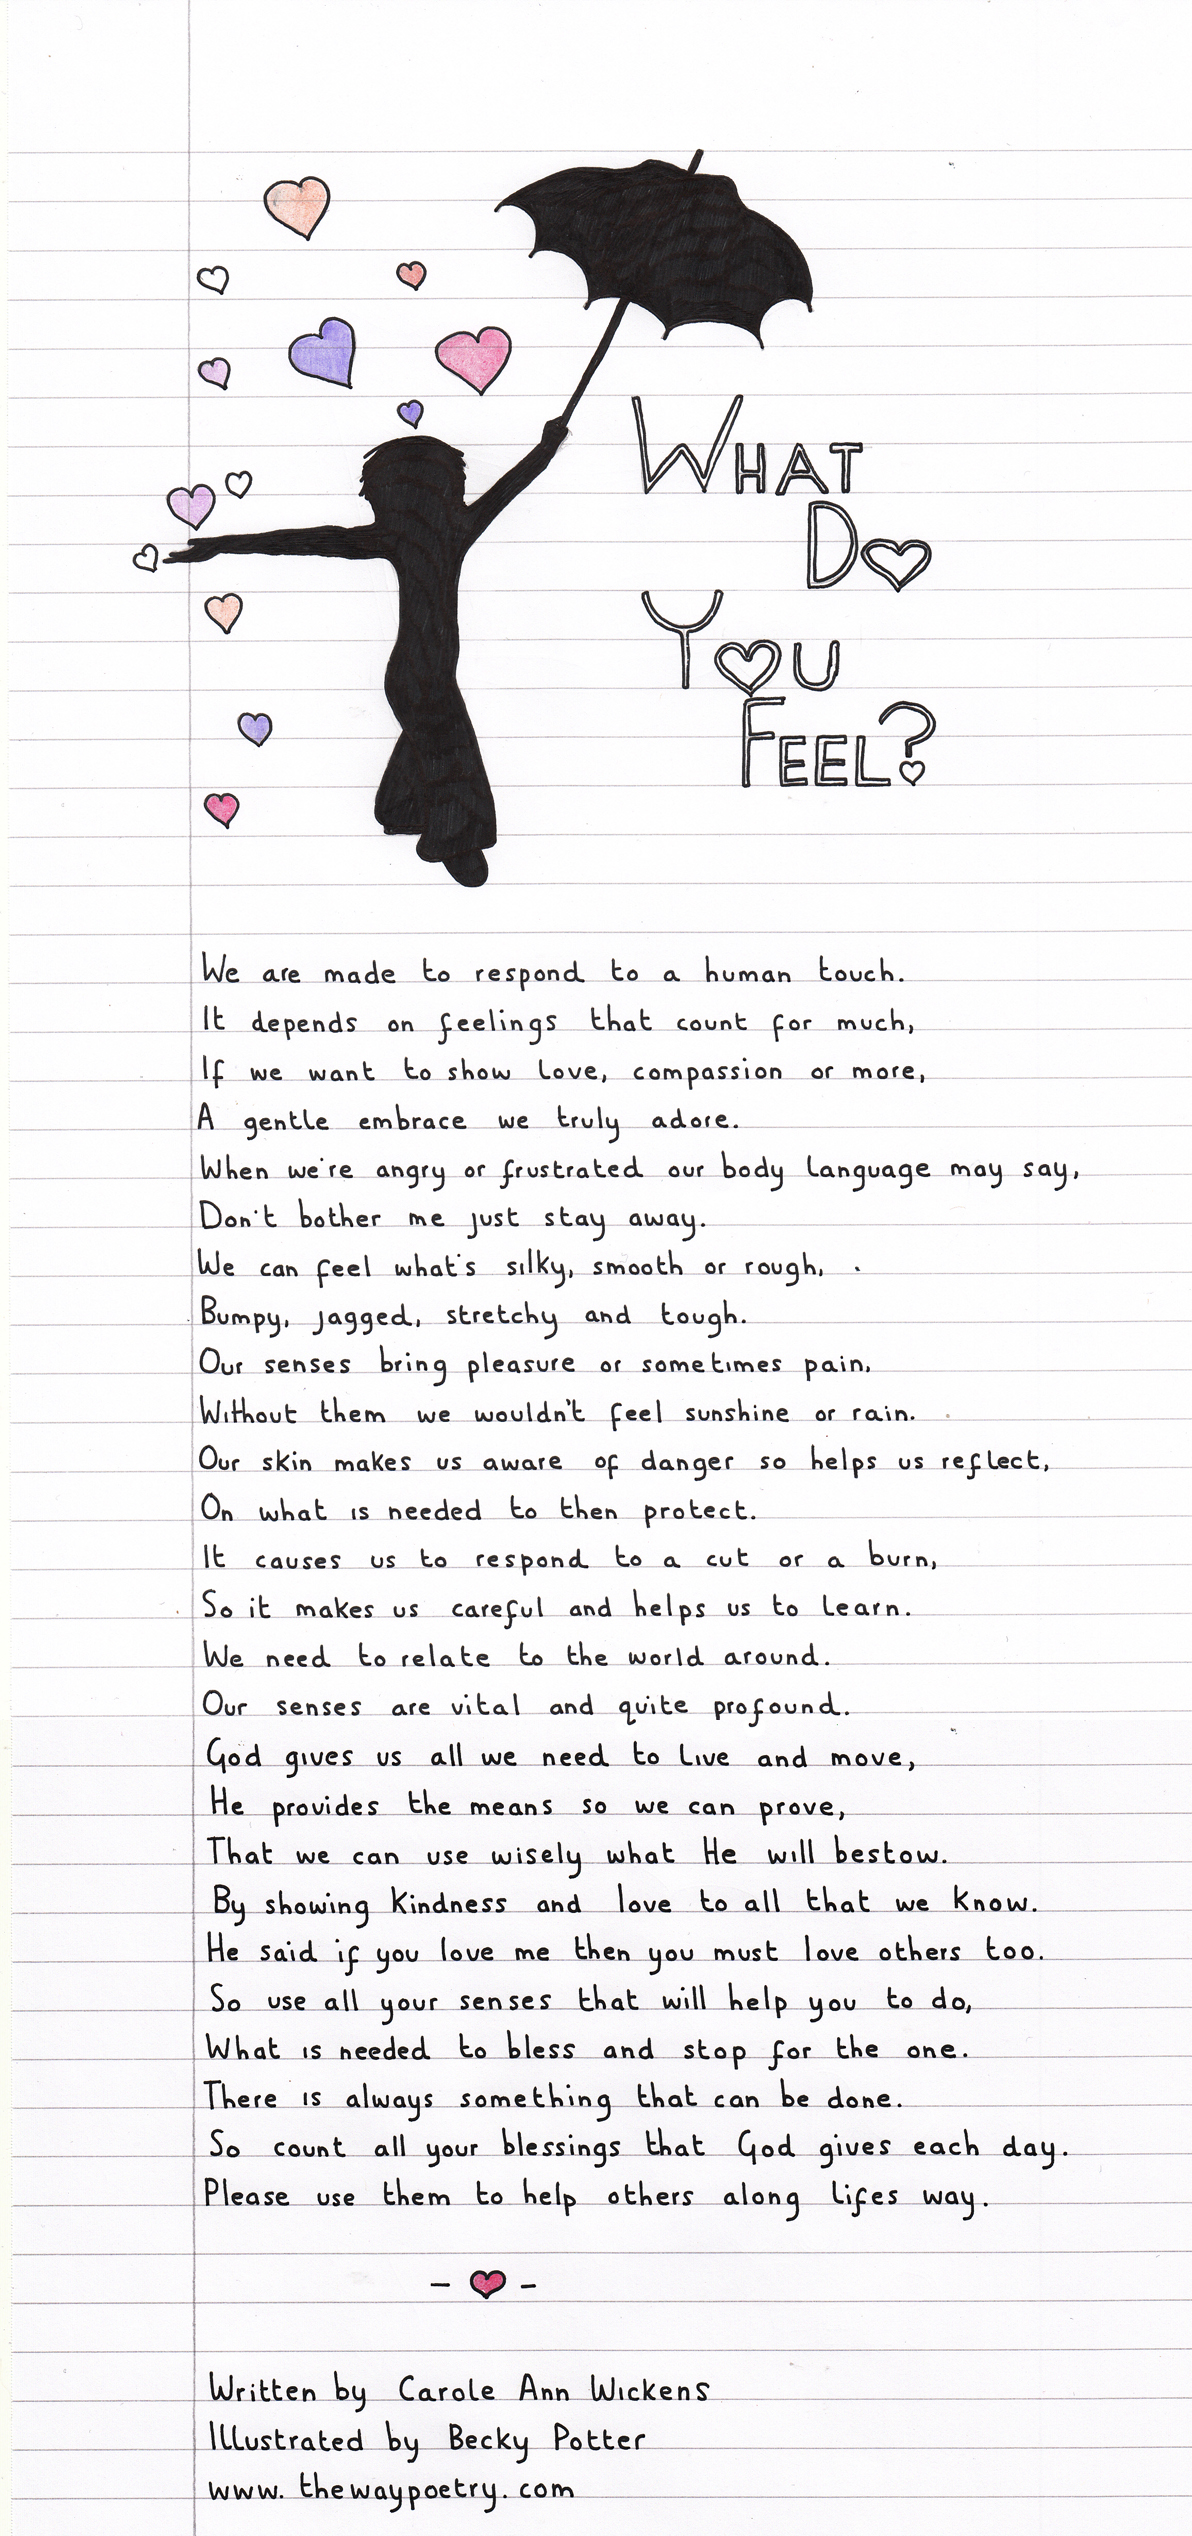 What Do You Feel? by Carole Ann Wickens